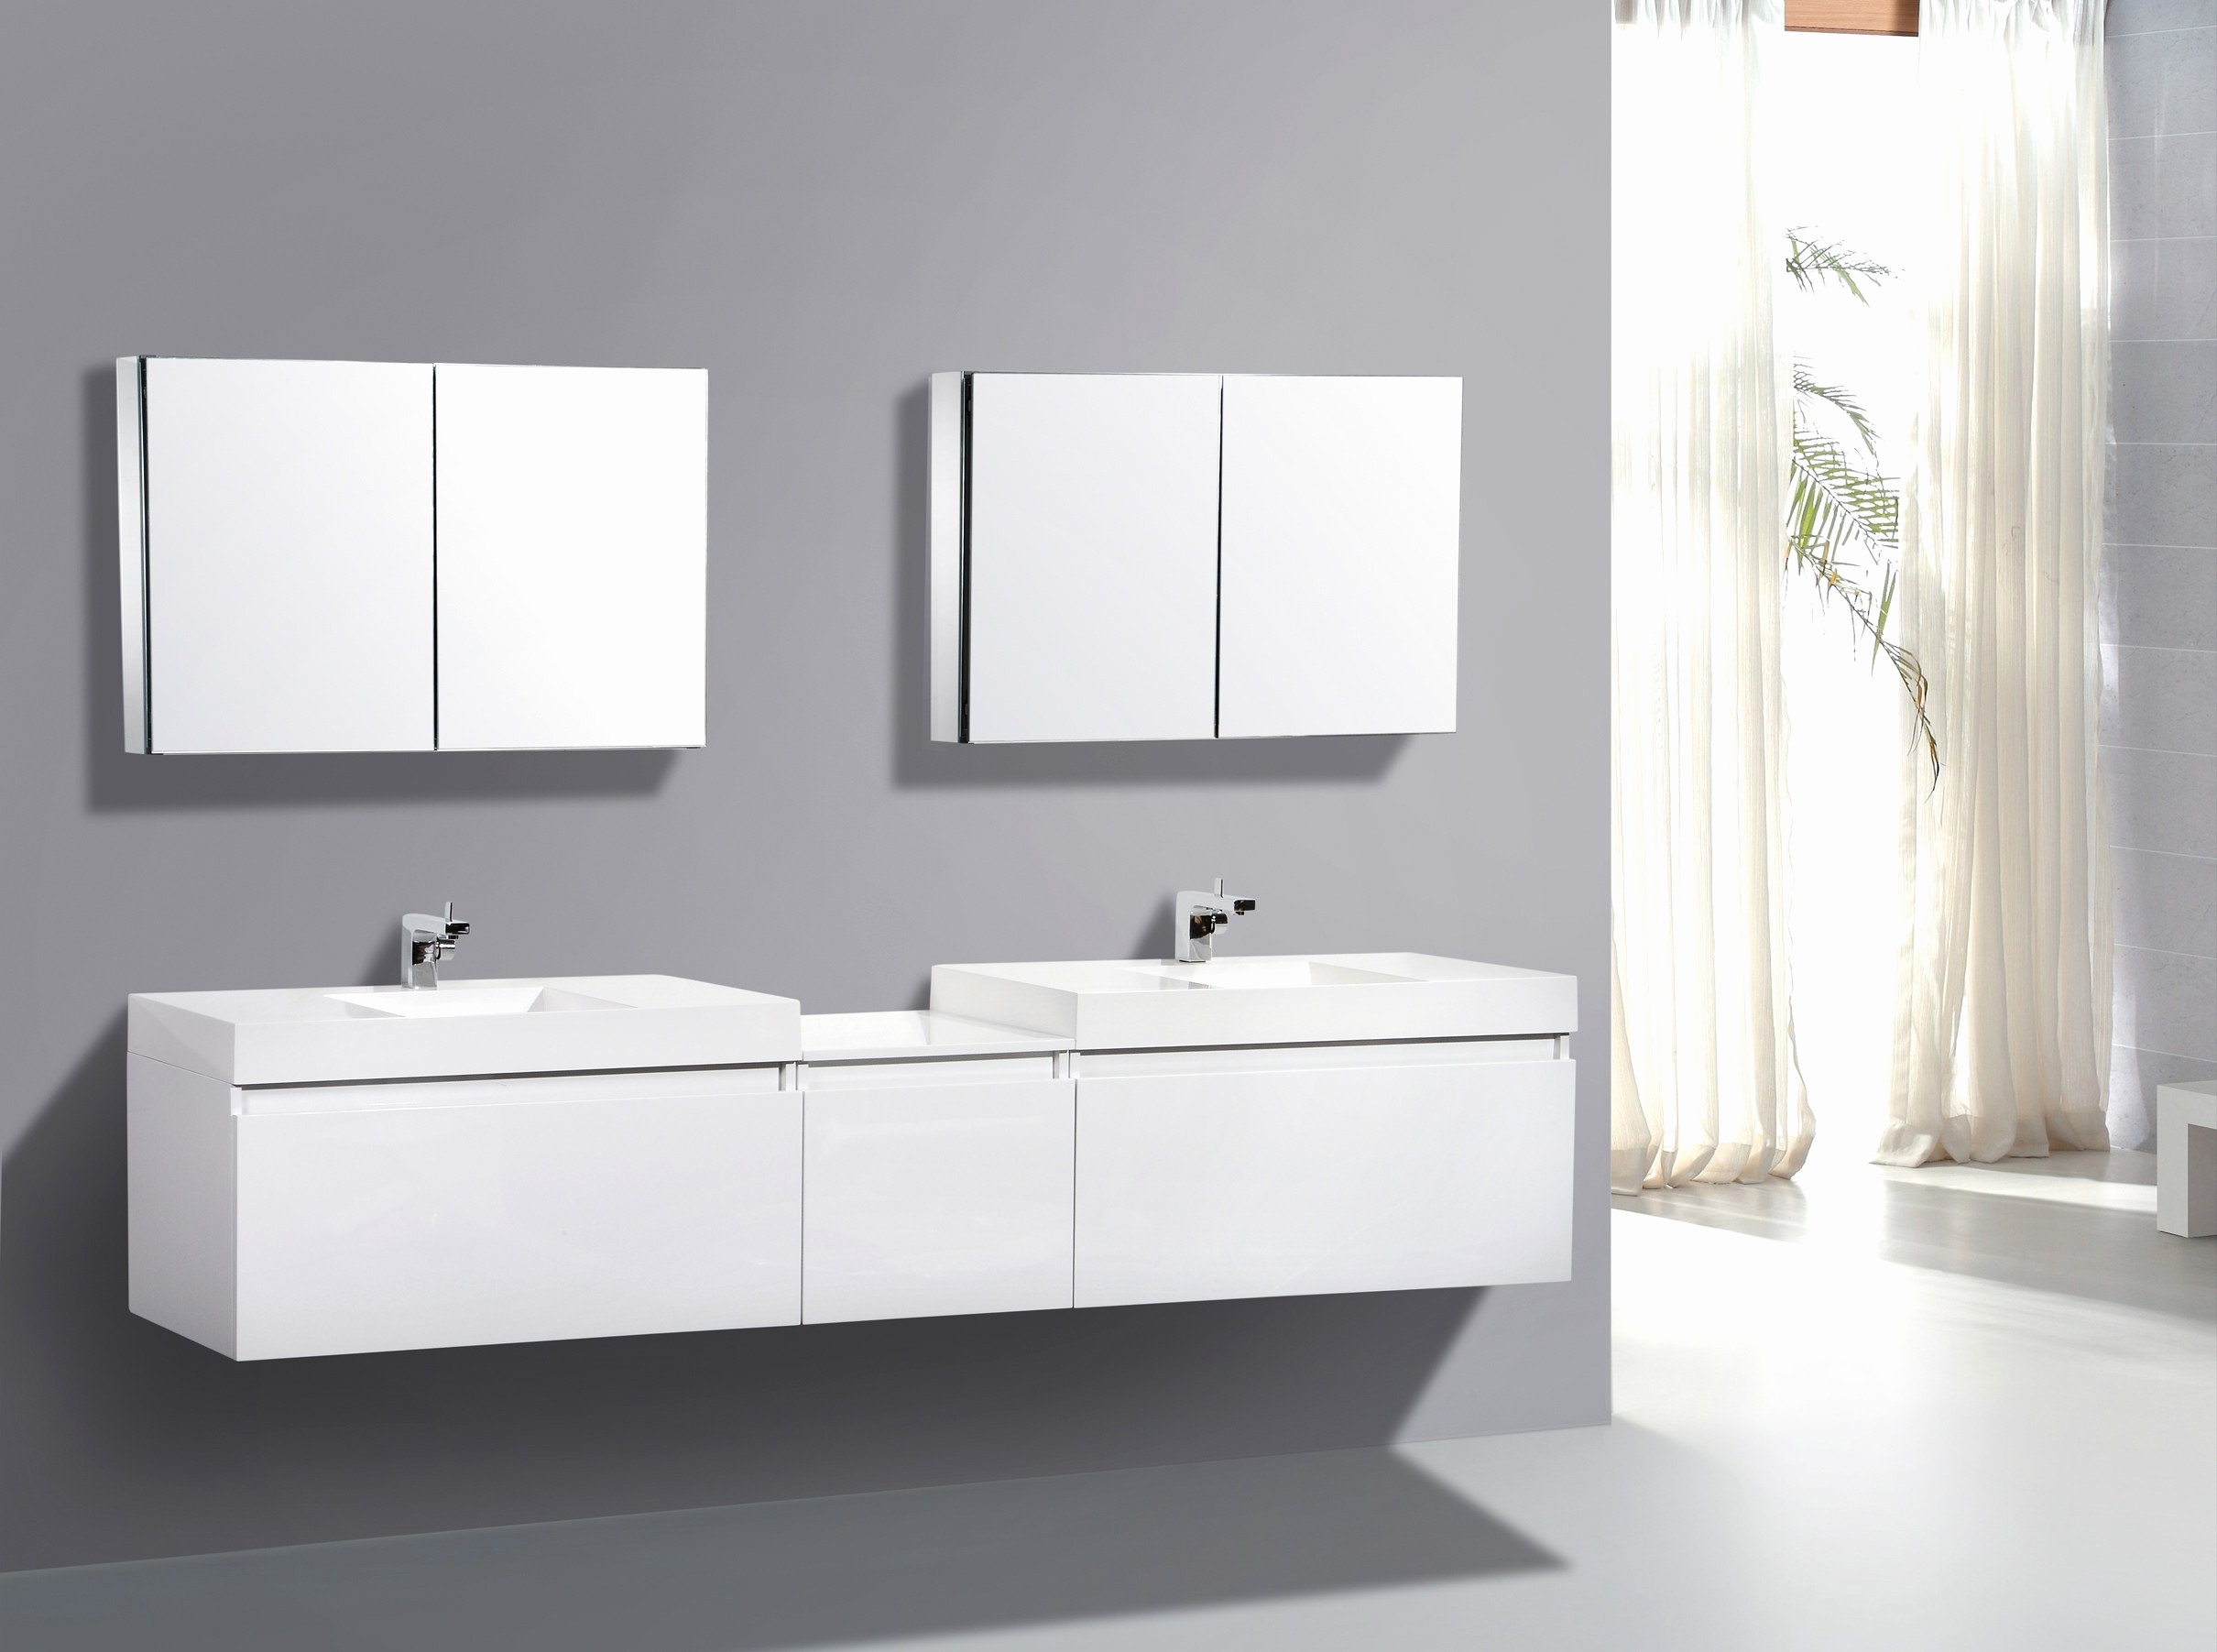 Image of: 24 in bathroom vanity with sink Luxury Modern White Bathroom Vanities 24 White Modern Bathroom Vanity W